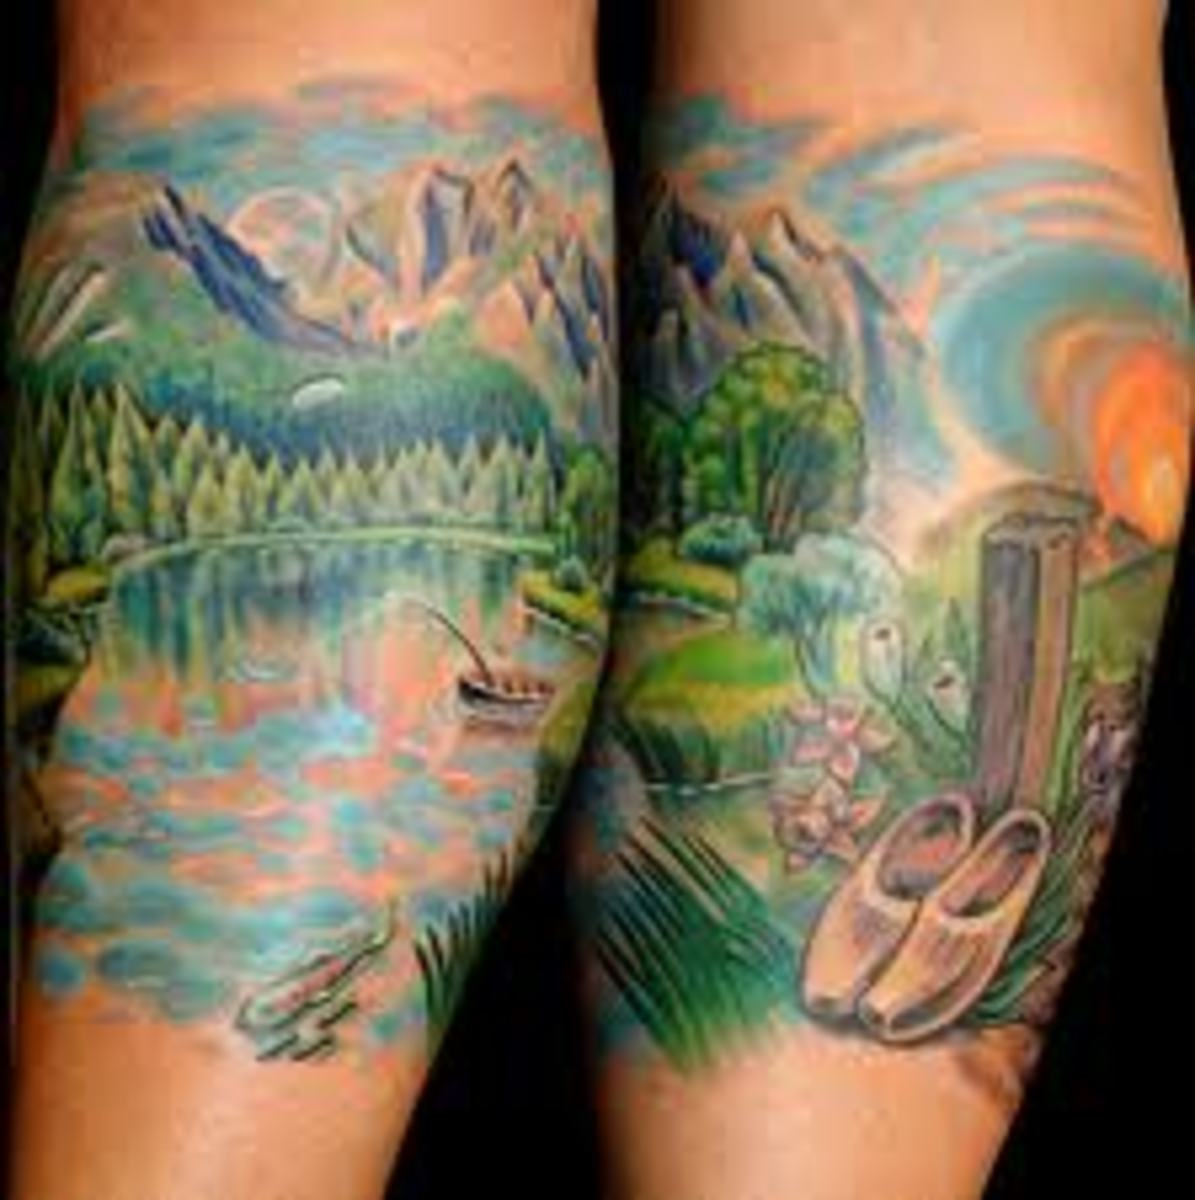 Landscape Tattoos And Designs-Landscape Tattoo Meanings And Ideas